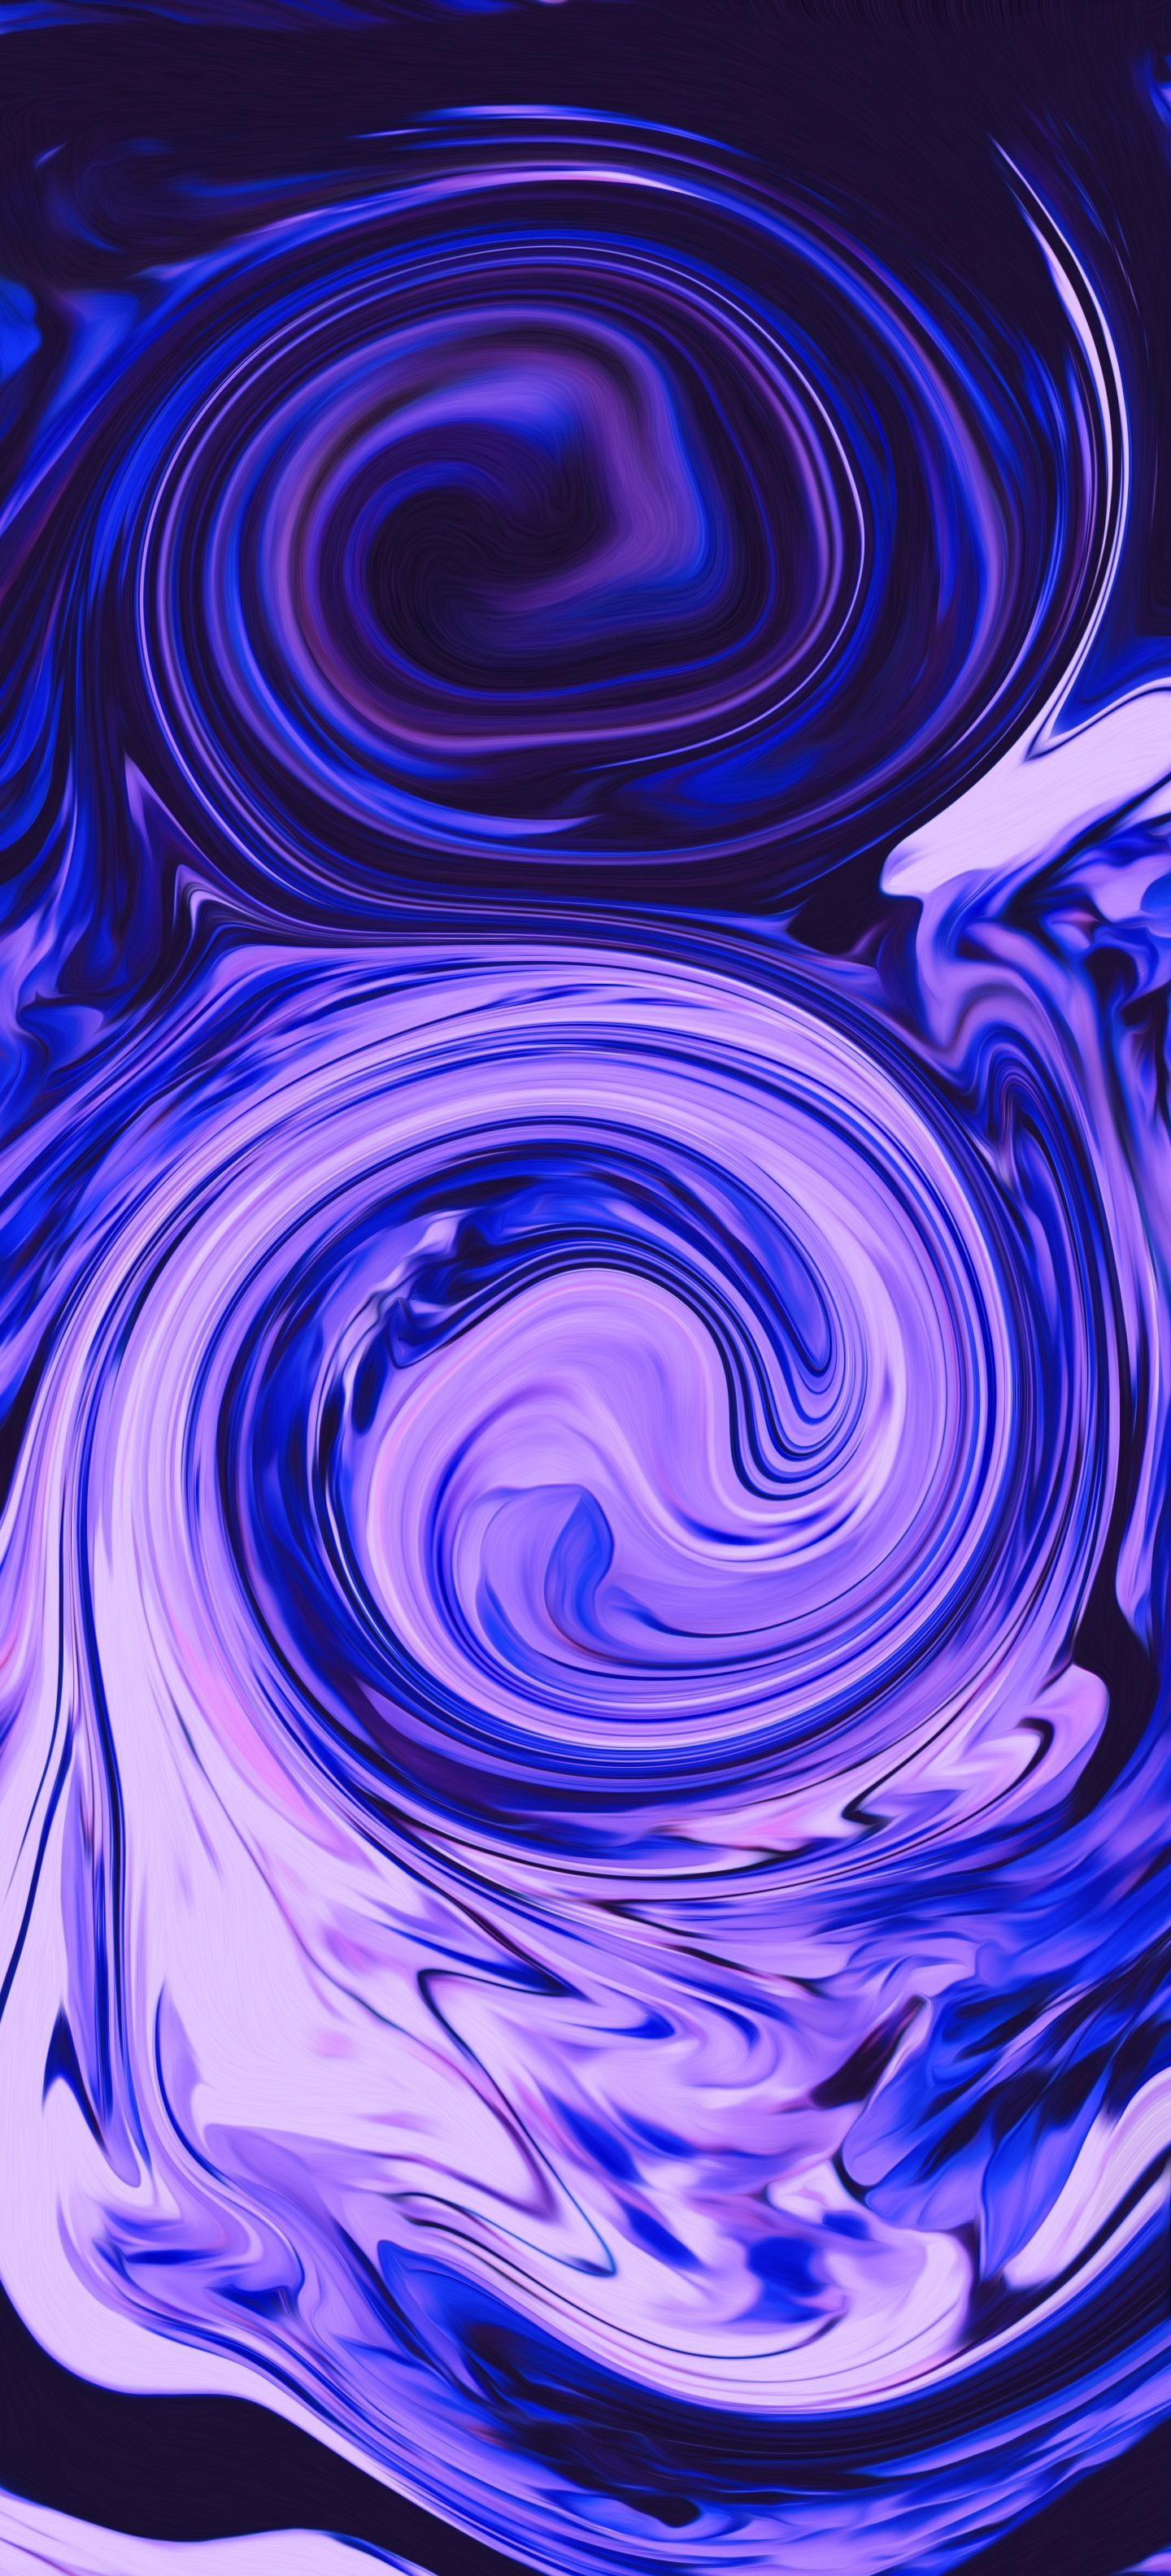 OnePlus 8 Pro Wallpaper (YTECHB Exclusive) in 2020 Stock